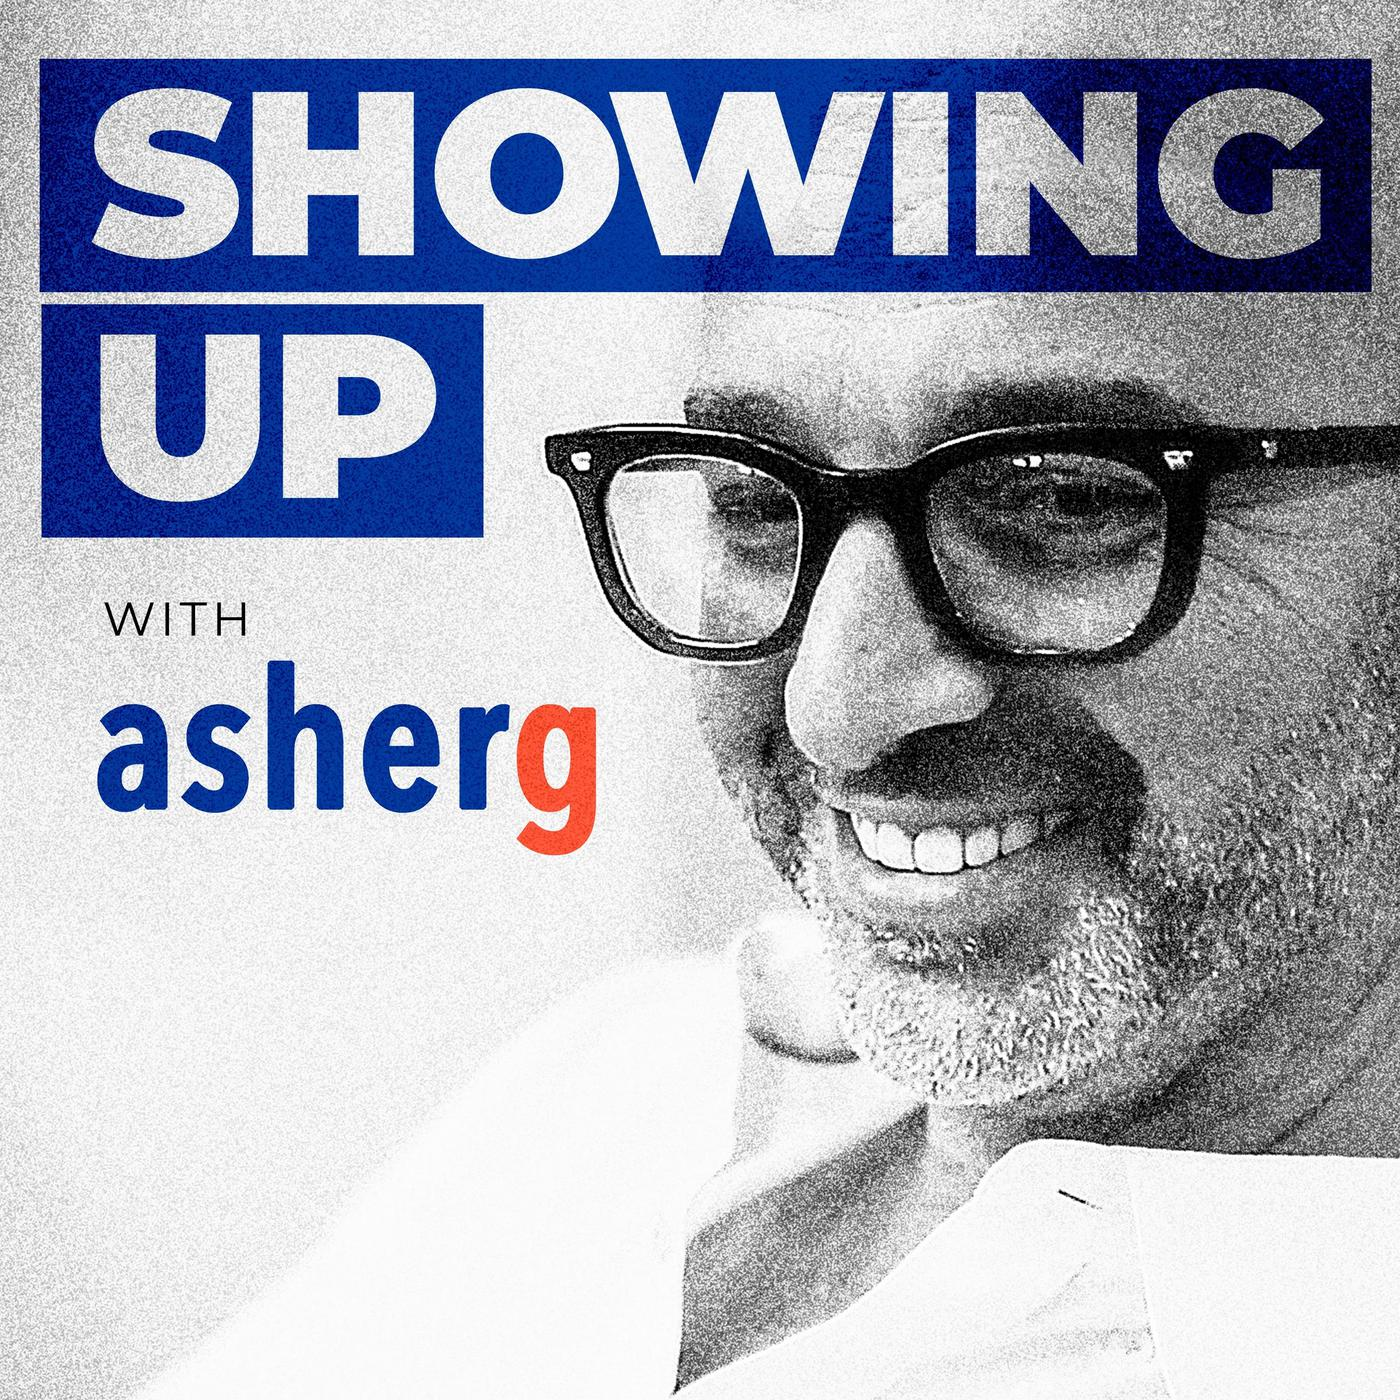 showing-up-with-asher-gottesman-m3jEe7tc-1R-De2UXyPA-O3.1400x1400